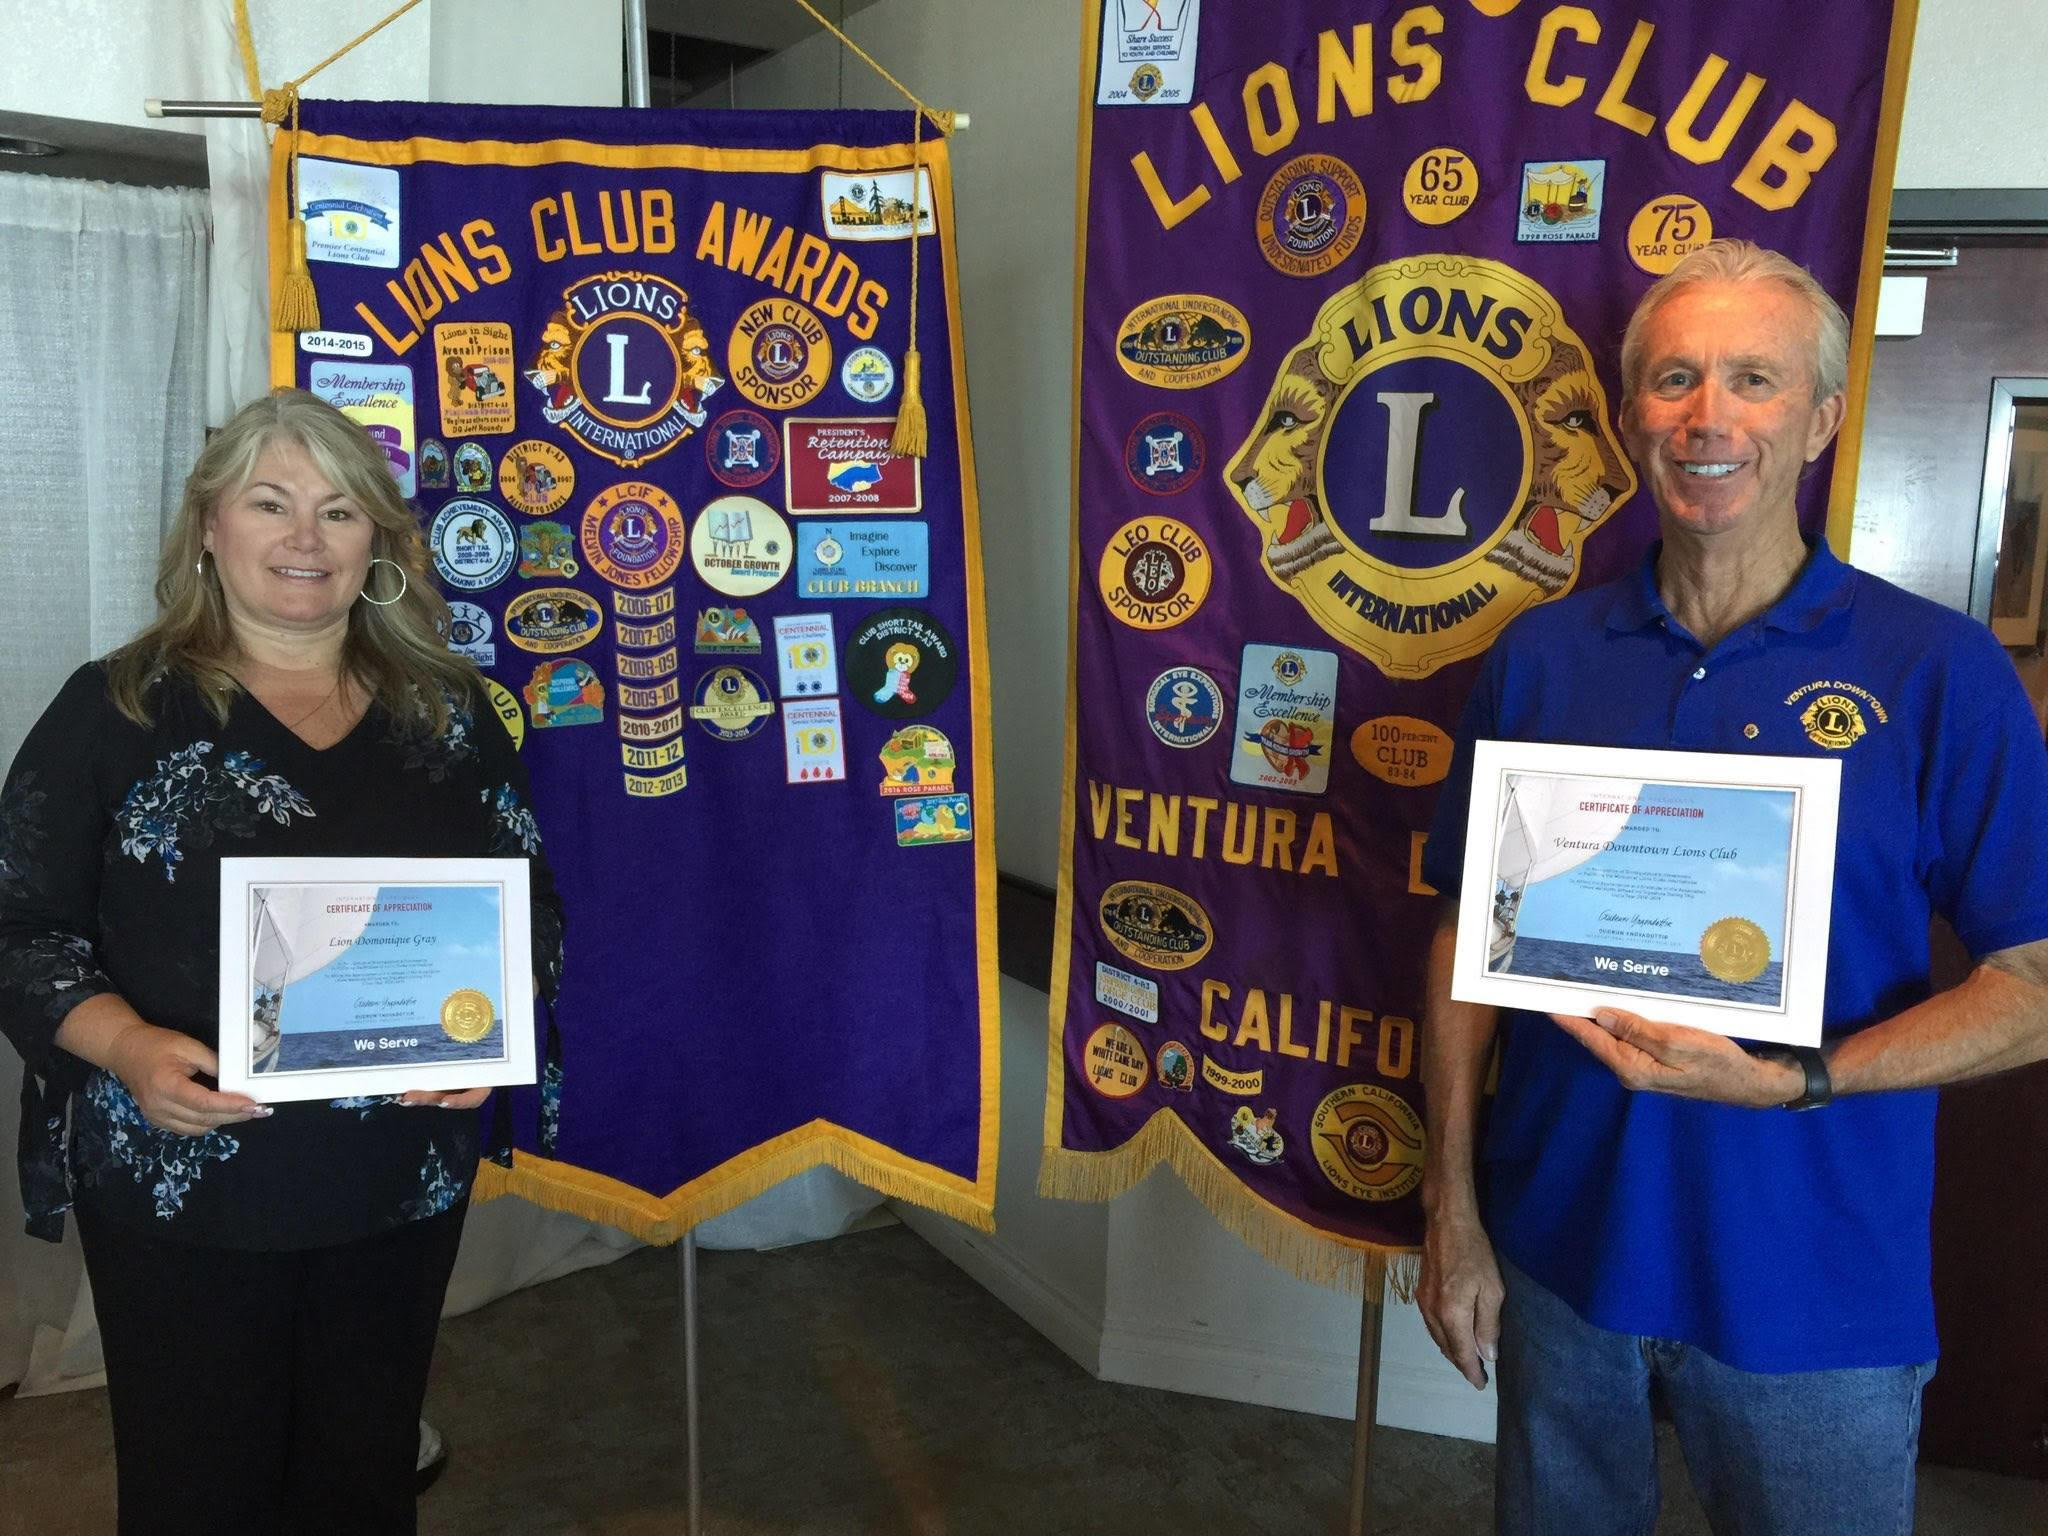 Ventura Downtown Lions Club image 1